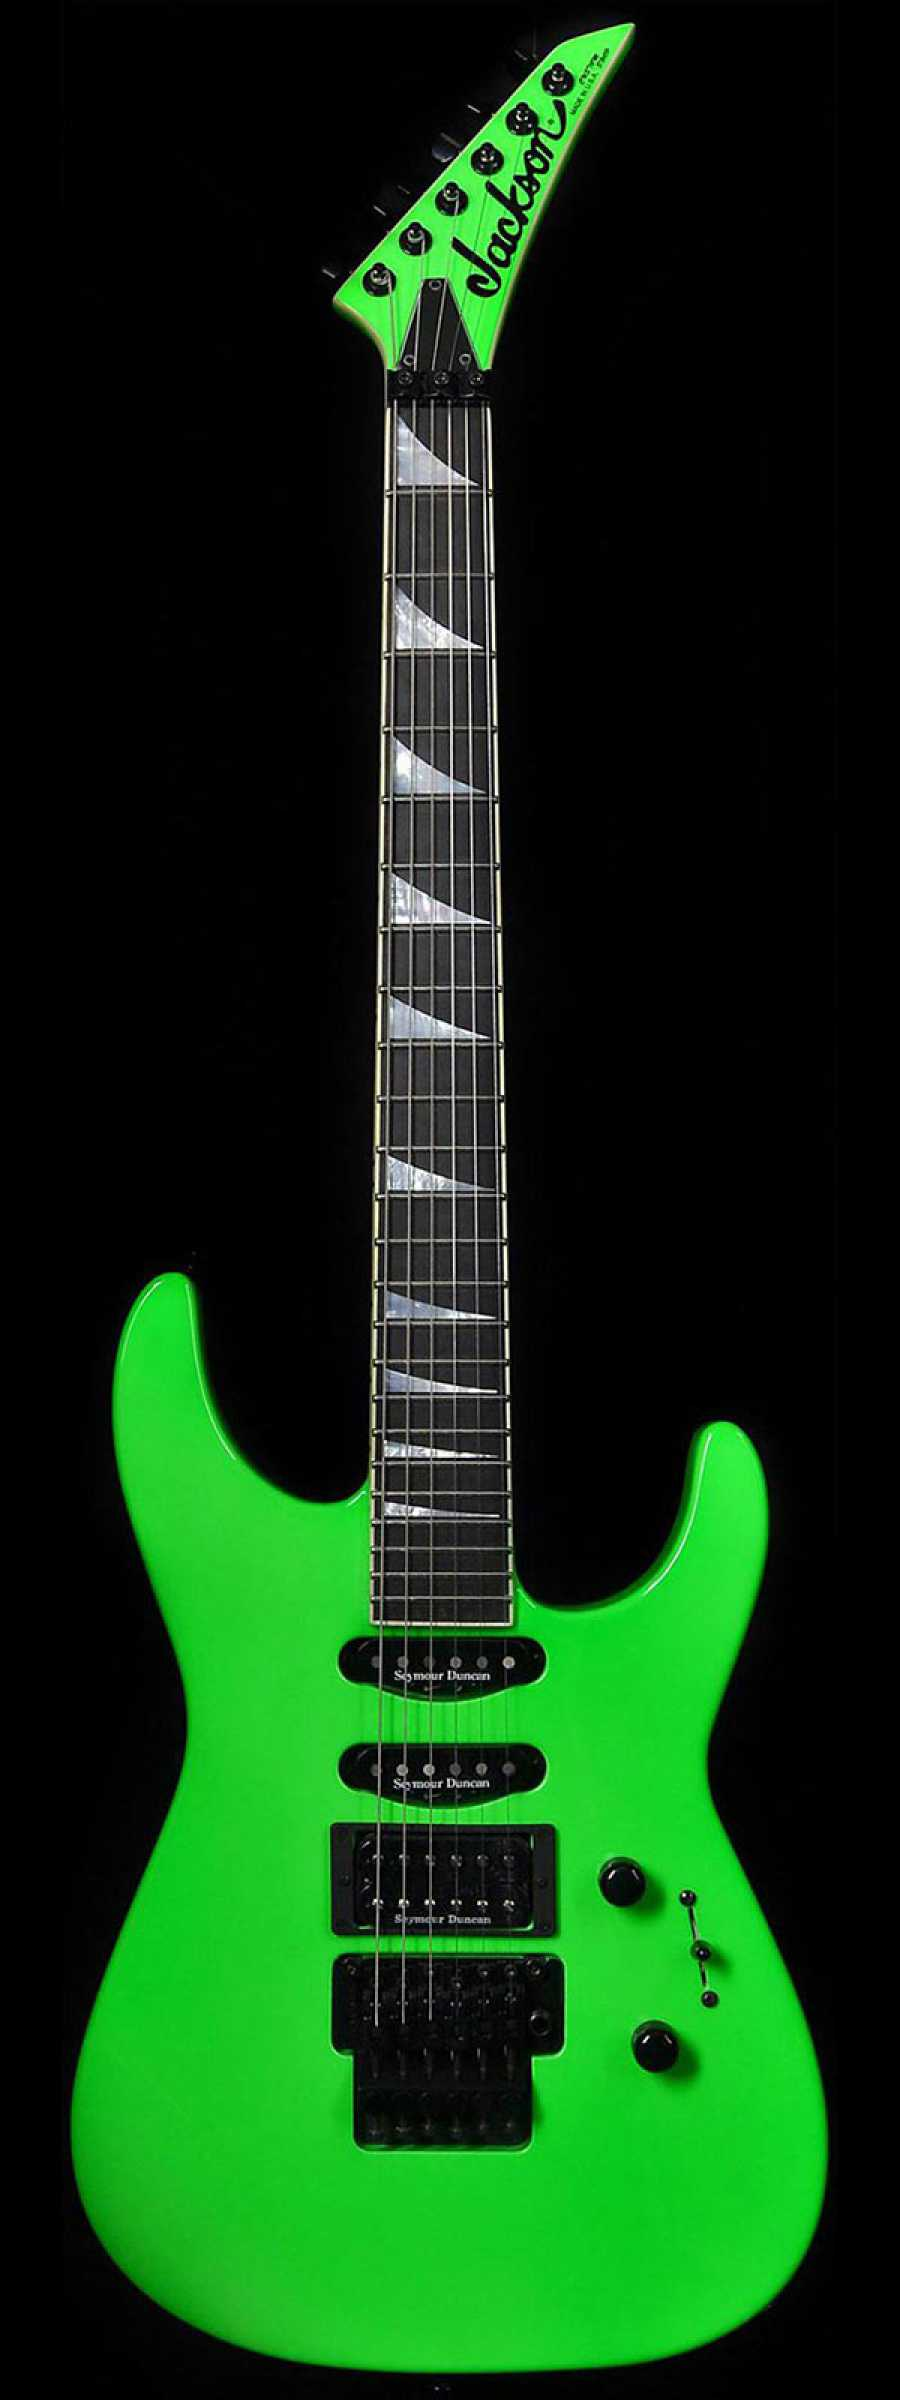 black neon electric guitar - photo #7